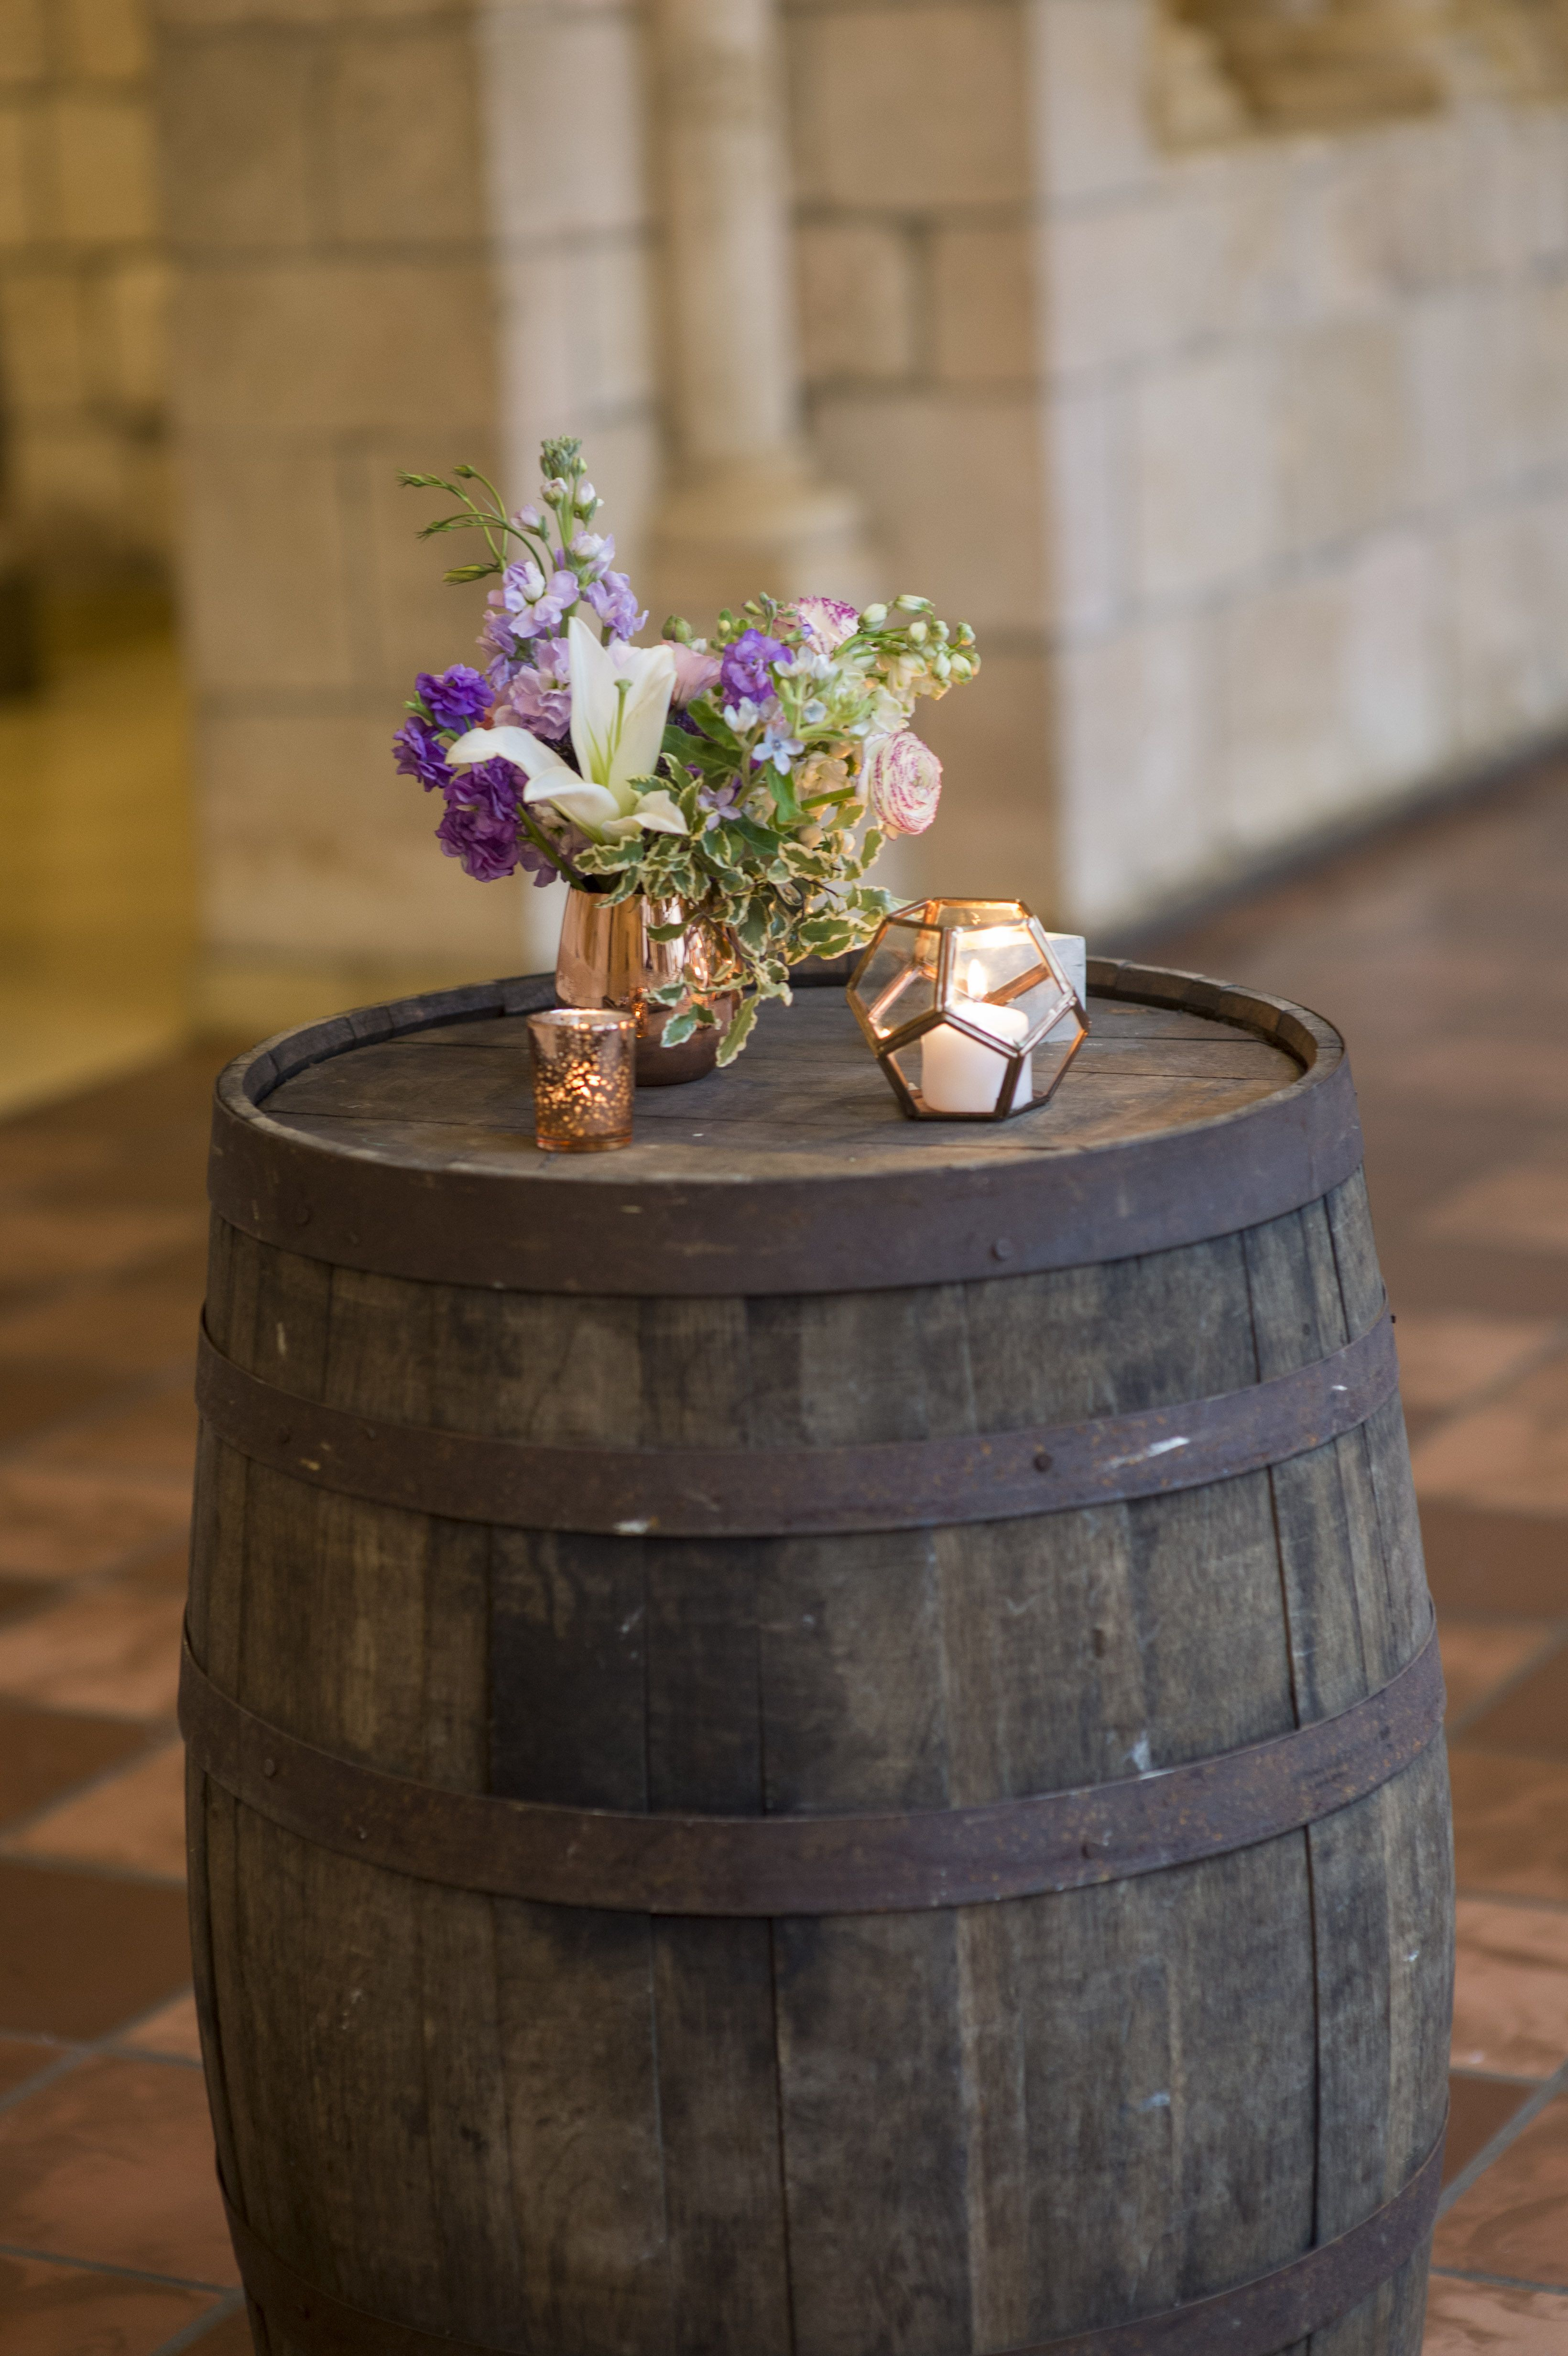 A little bit of rustic with our barrel and a spark of chic